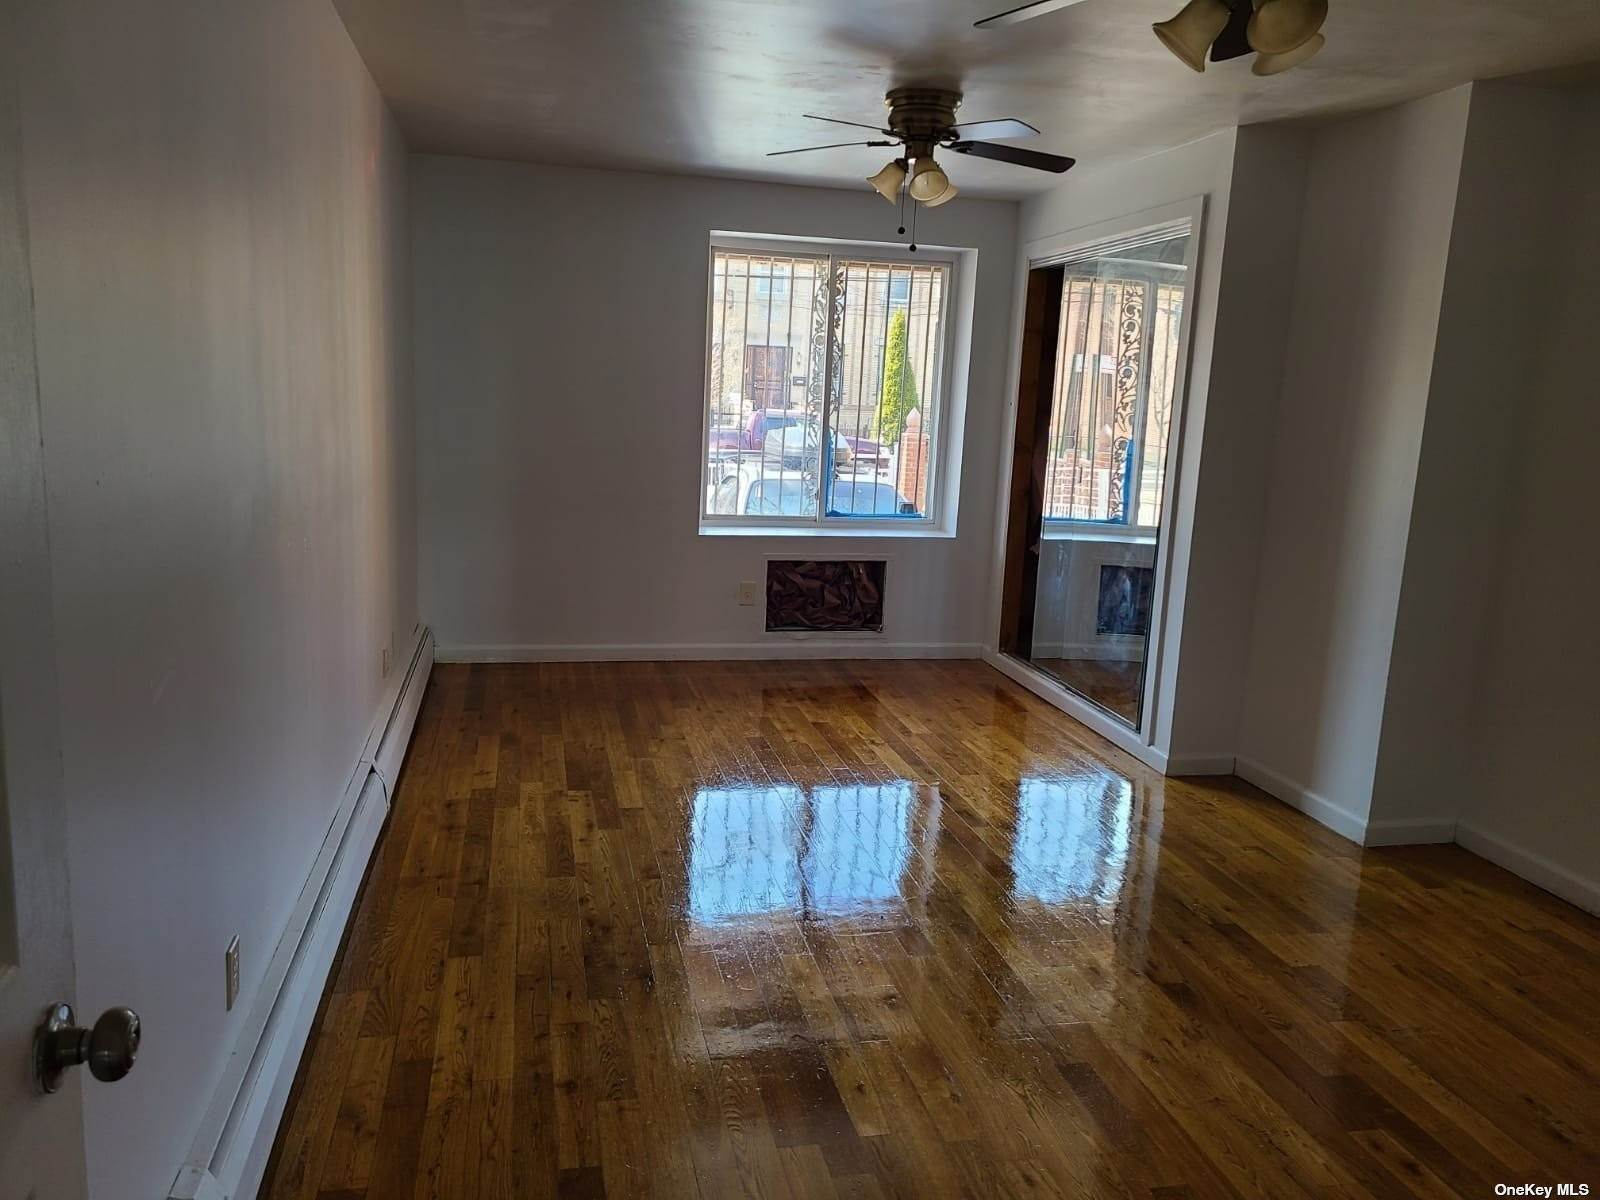 Residential Lease om 34-17 99th Street # 1 F Corona, New York 11368 Verenigde Staten